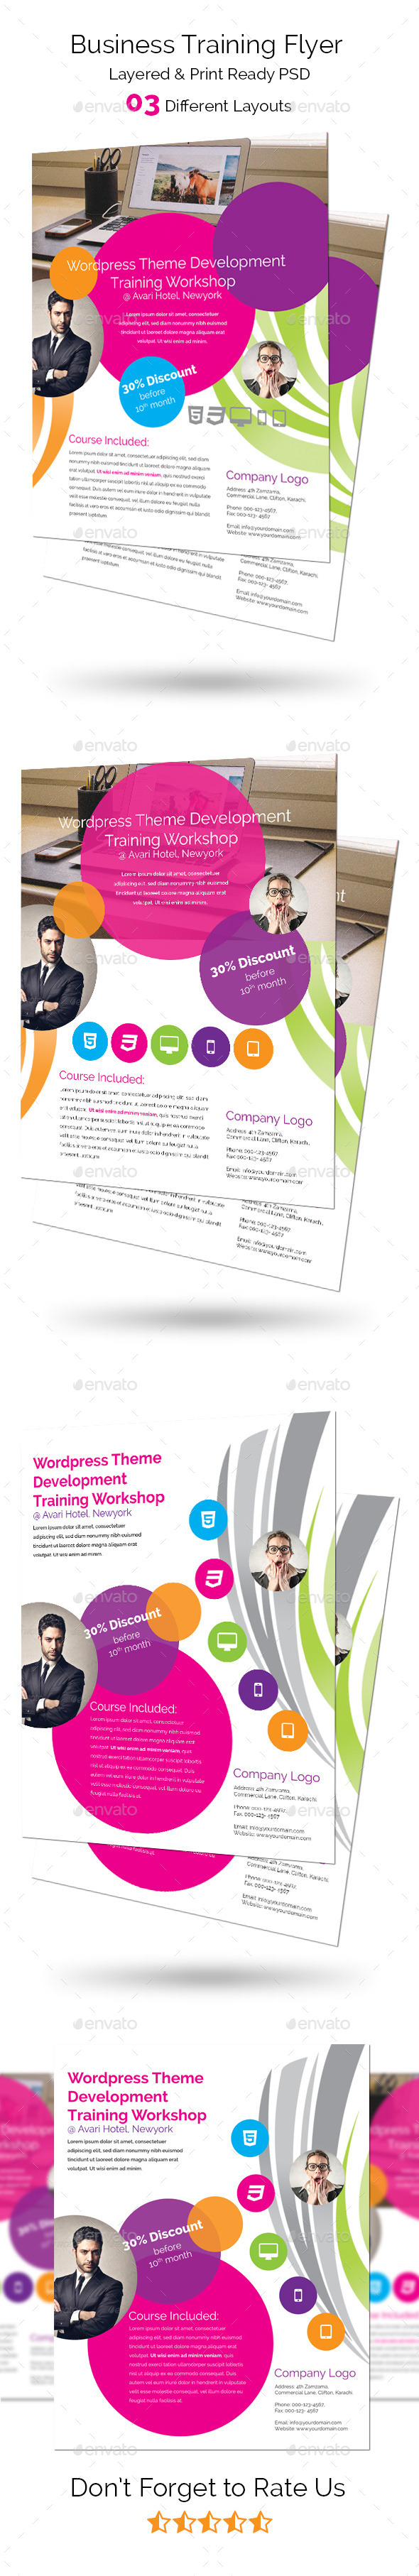 Business Training Flyer - Corporate Flyers